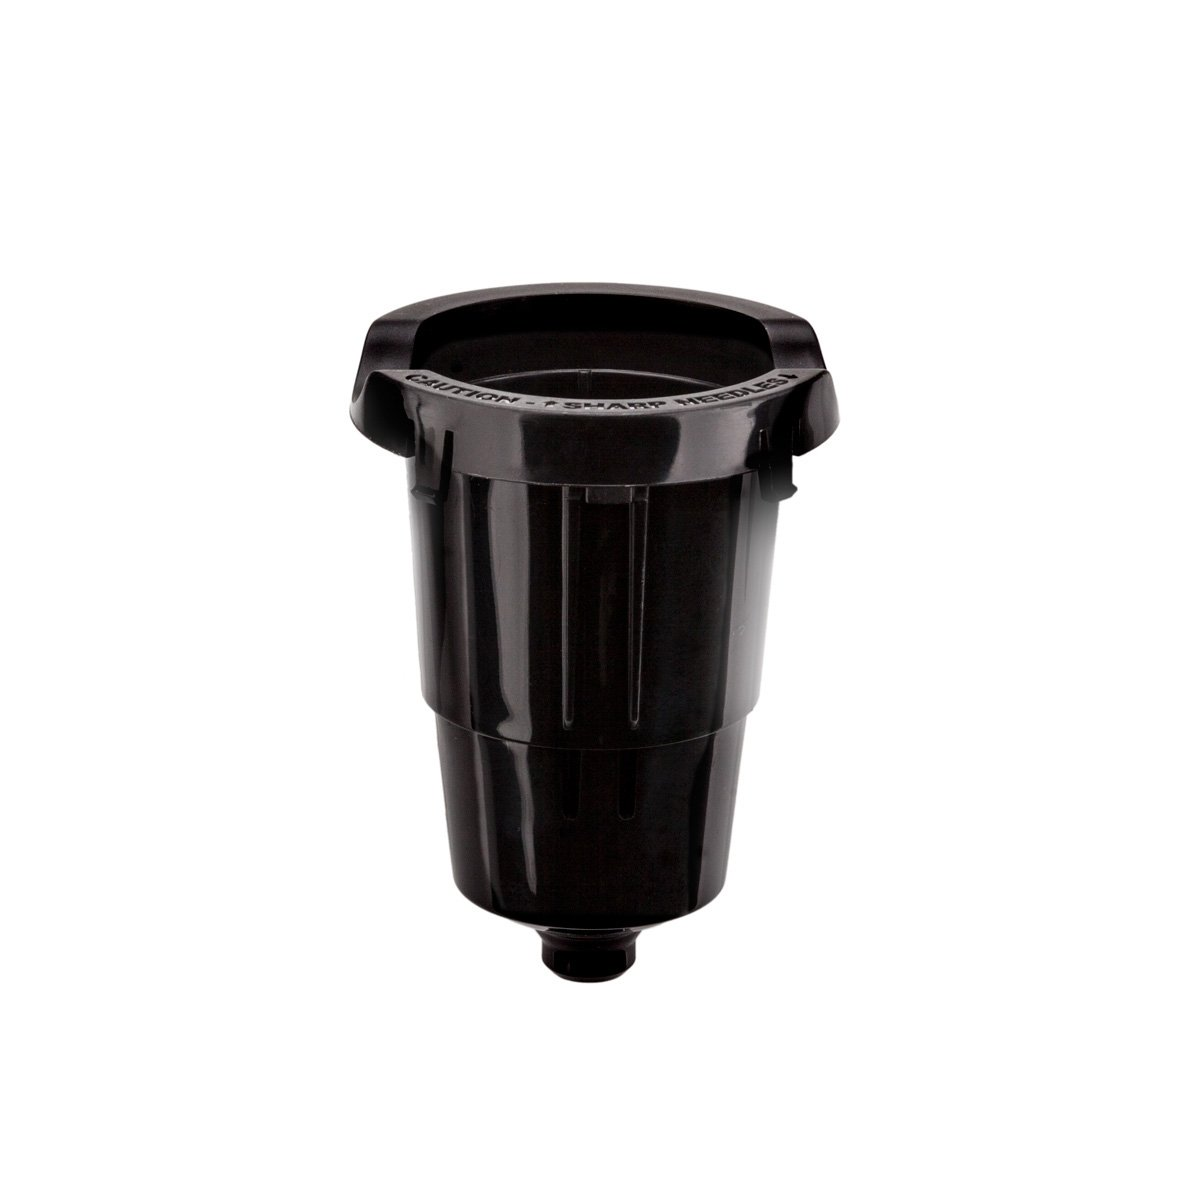 Replacement KCup Holder Part with Exit Needle for Keurig K10 K40 K70 K75 K75